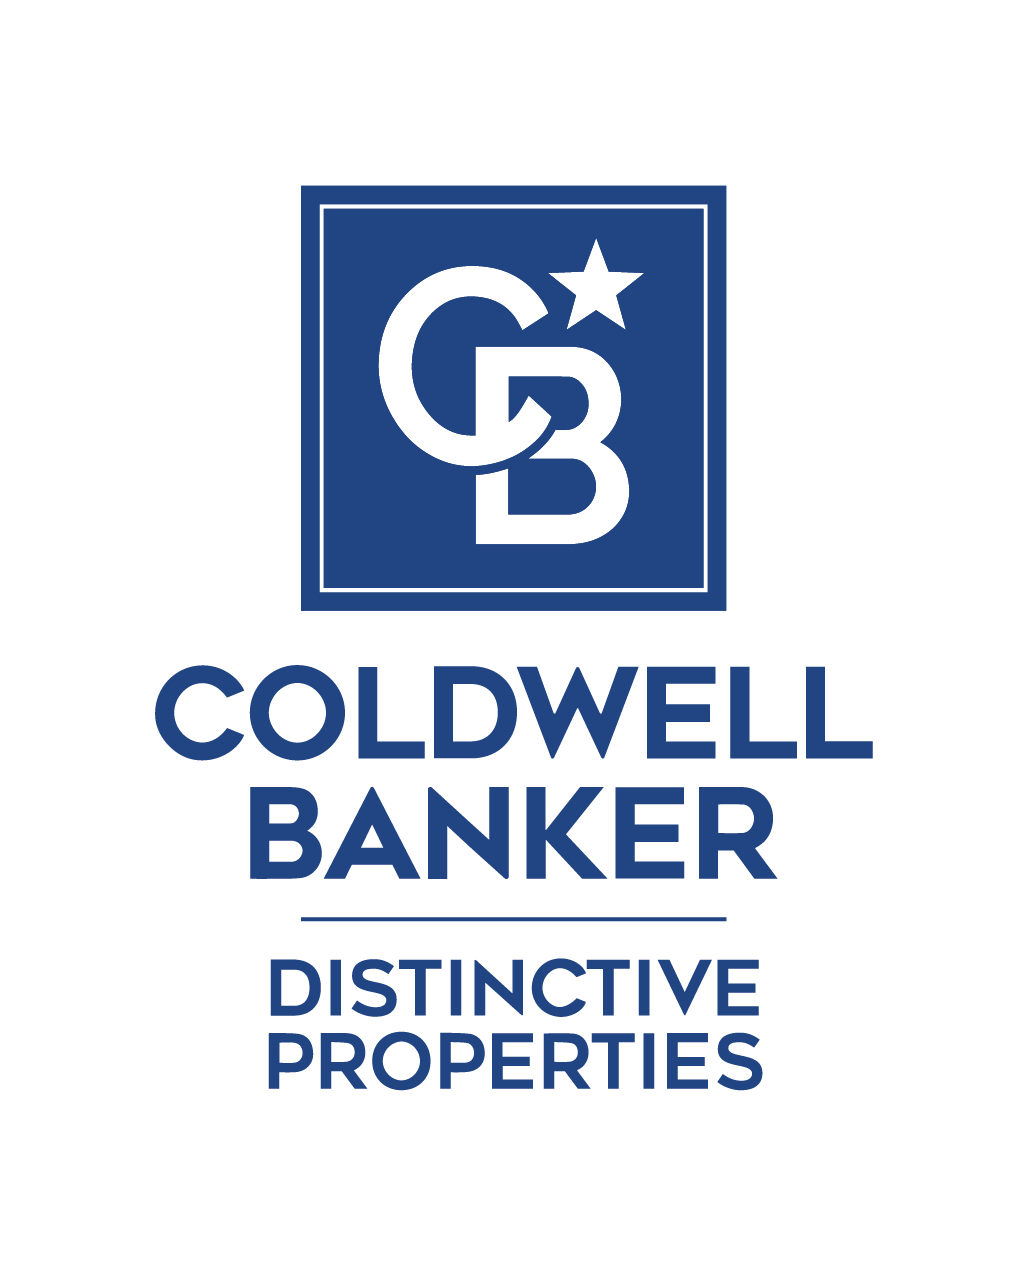 Elizabeth Foley - Coldwell Banker Distinctive Properties Logo